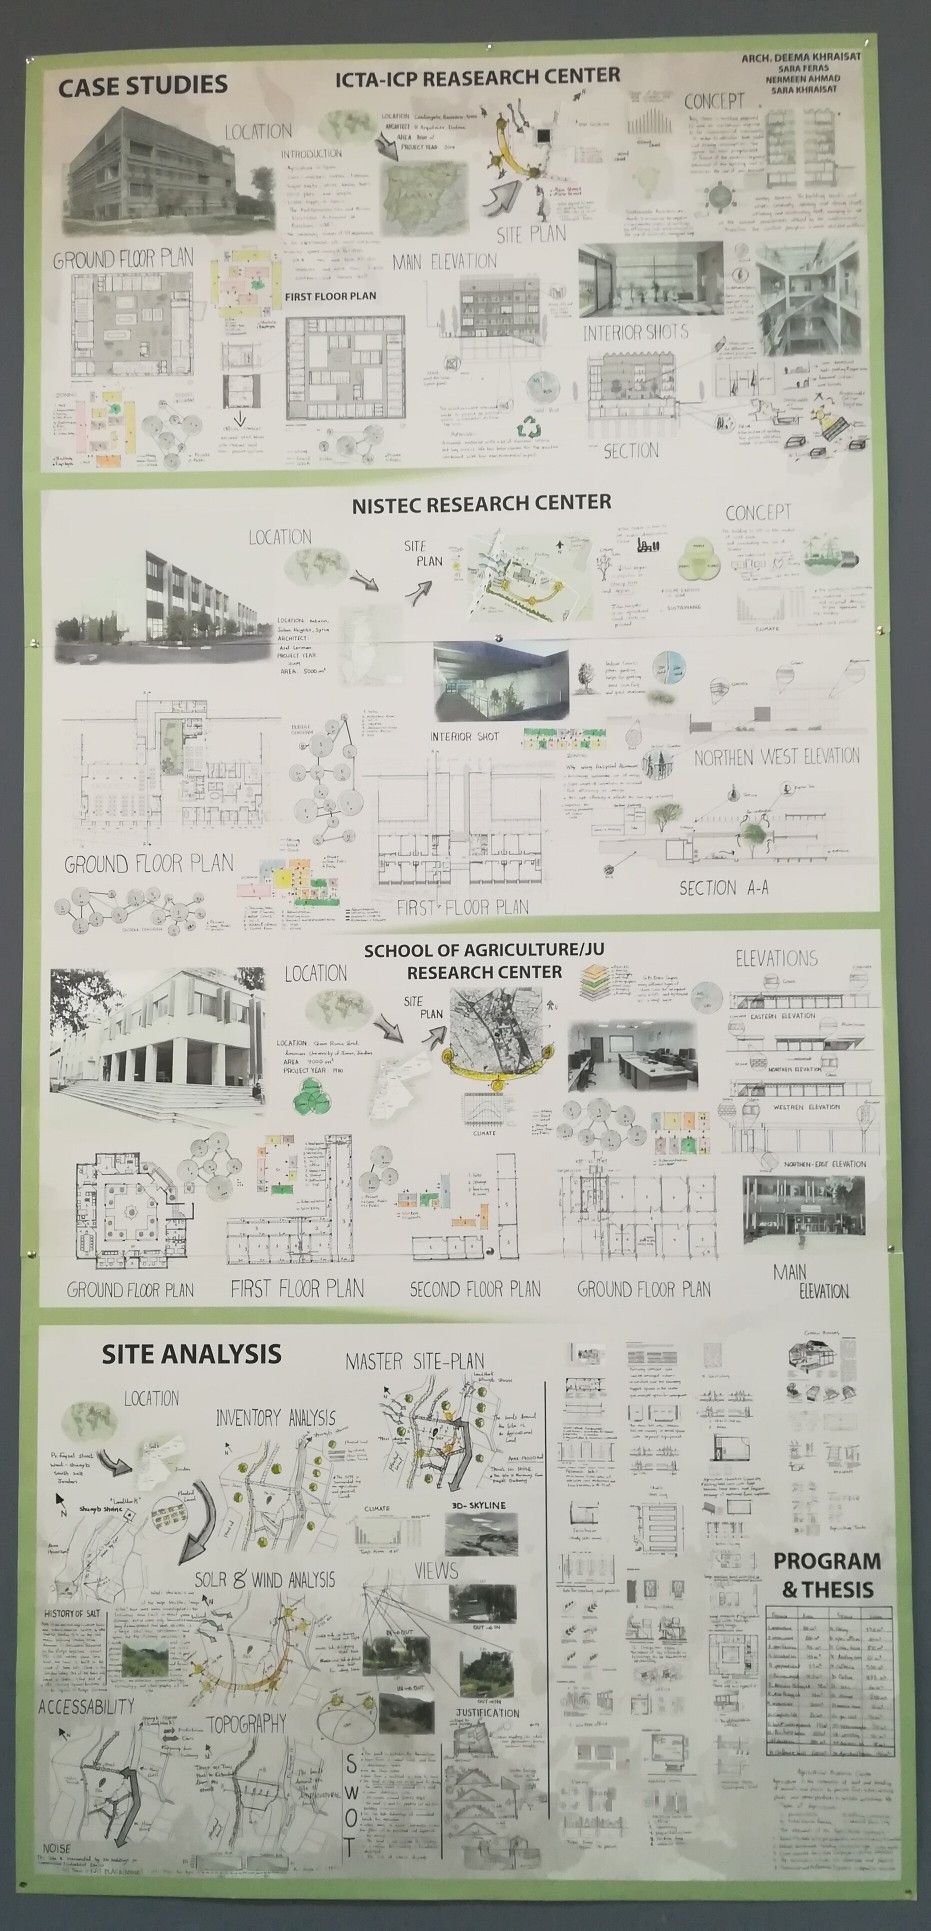 Case Studies About An Agricultural Research Center Site Analysis